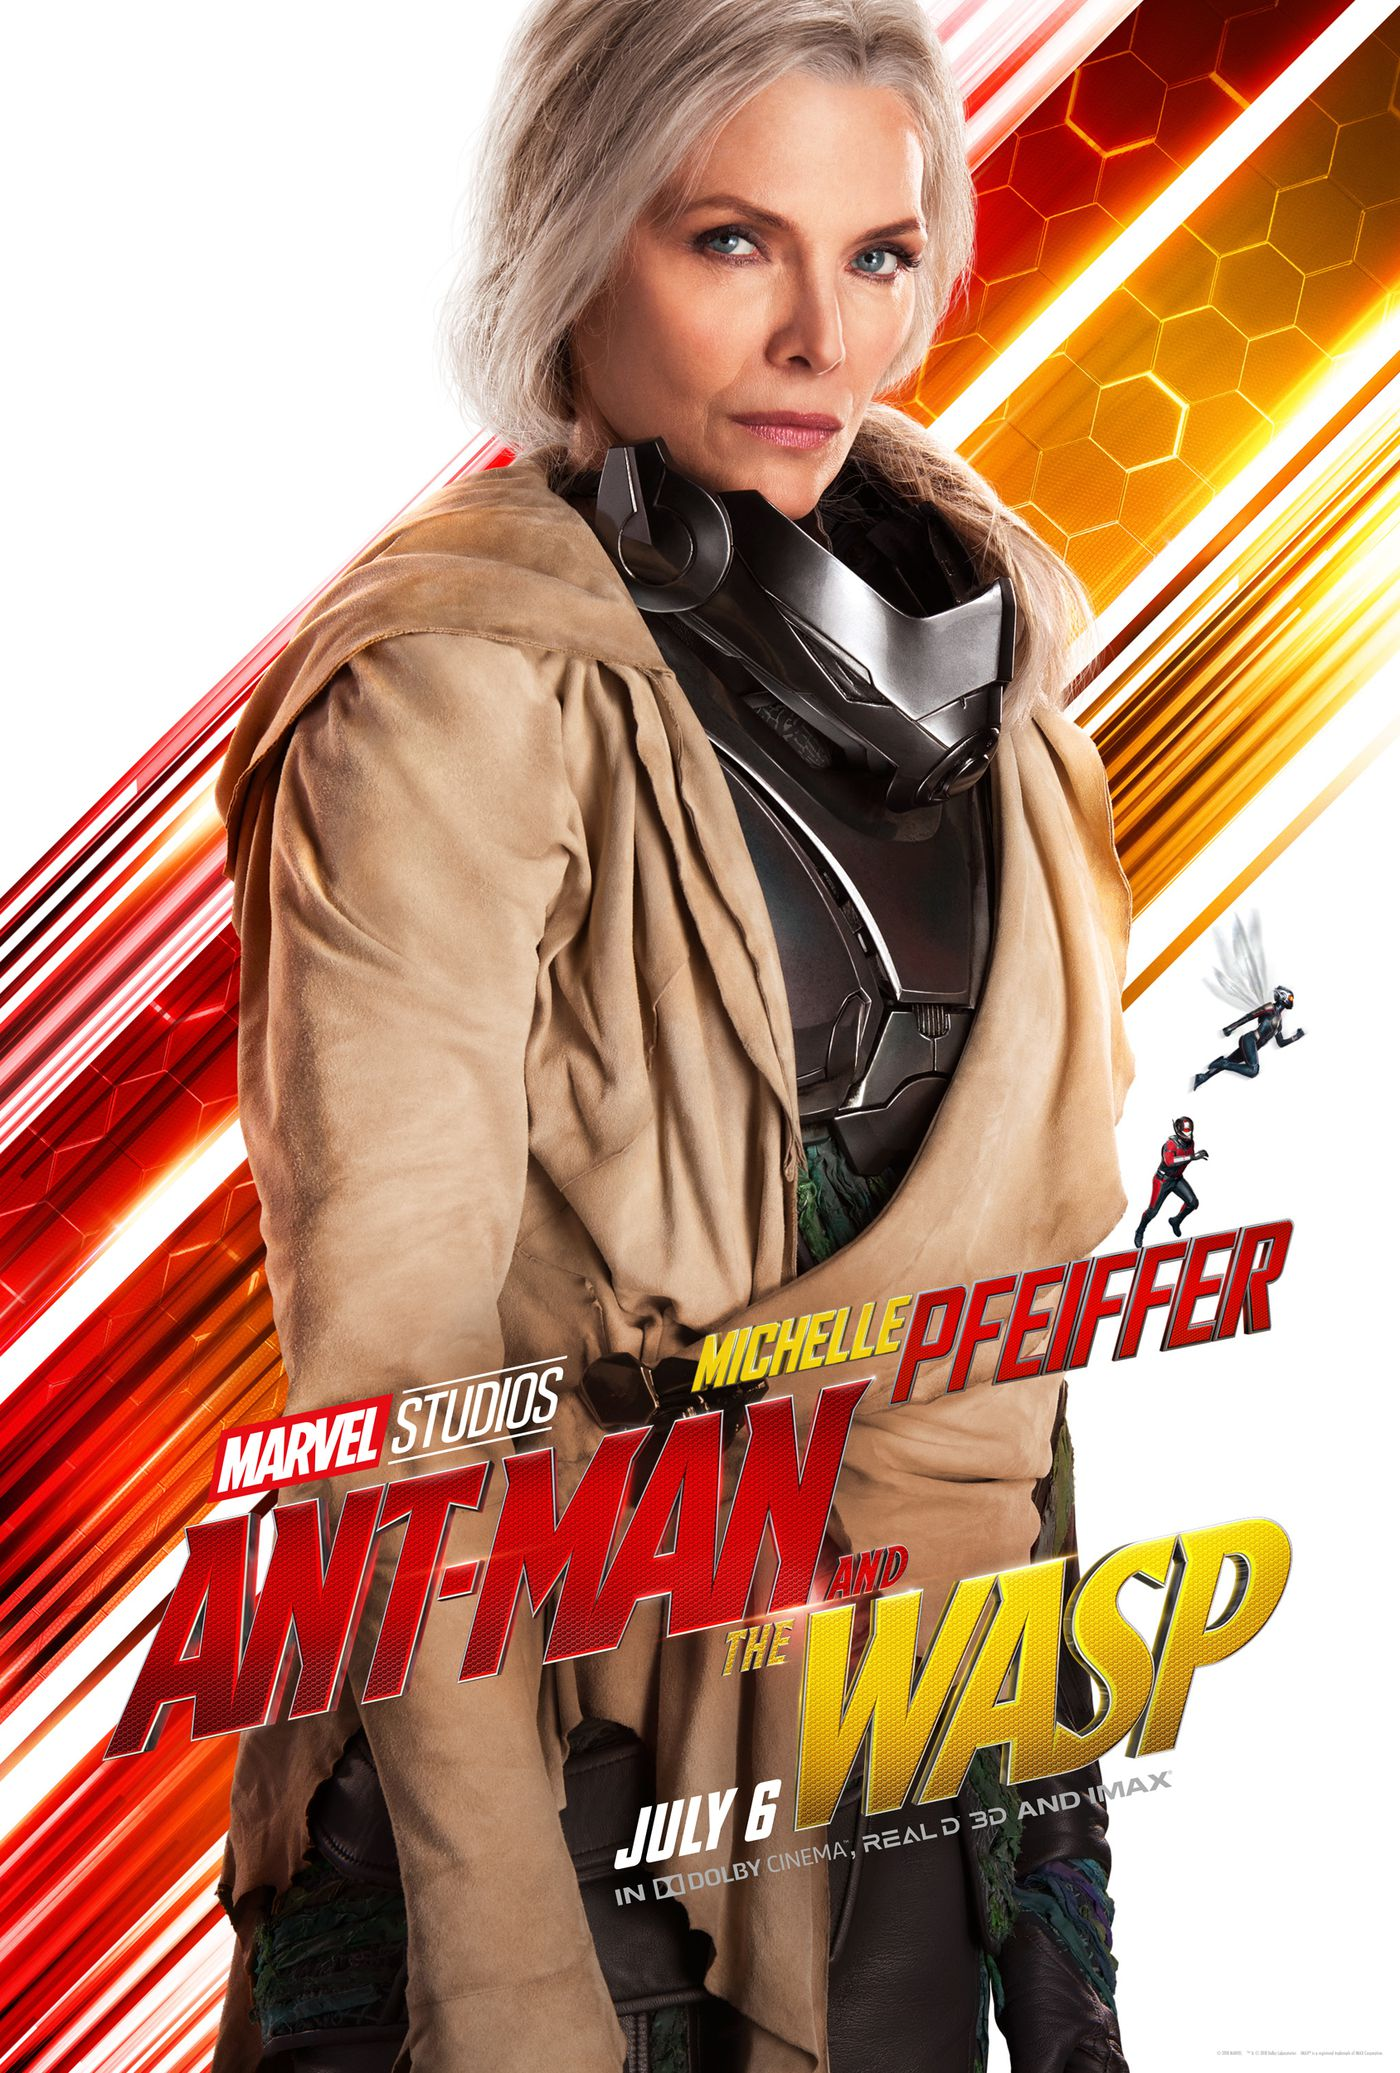 Michelle Pfeiffer in Ant-Man and the Wasp